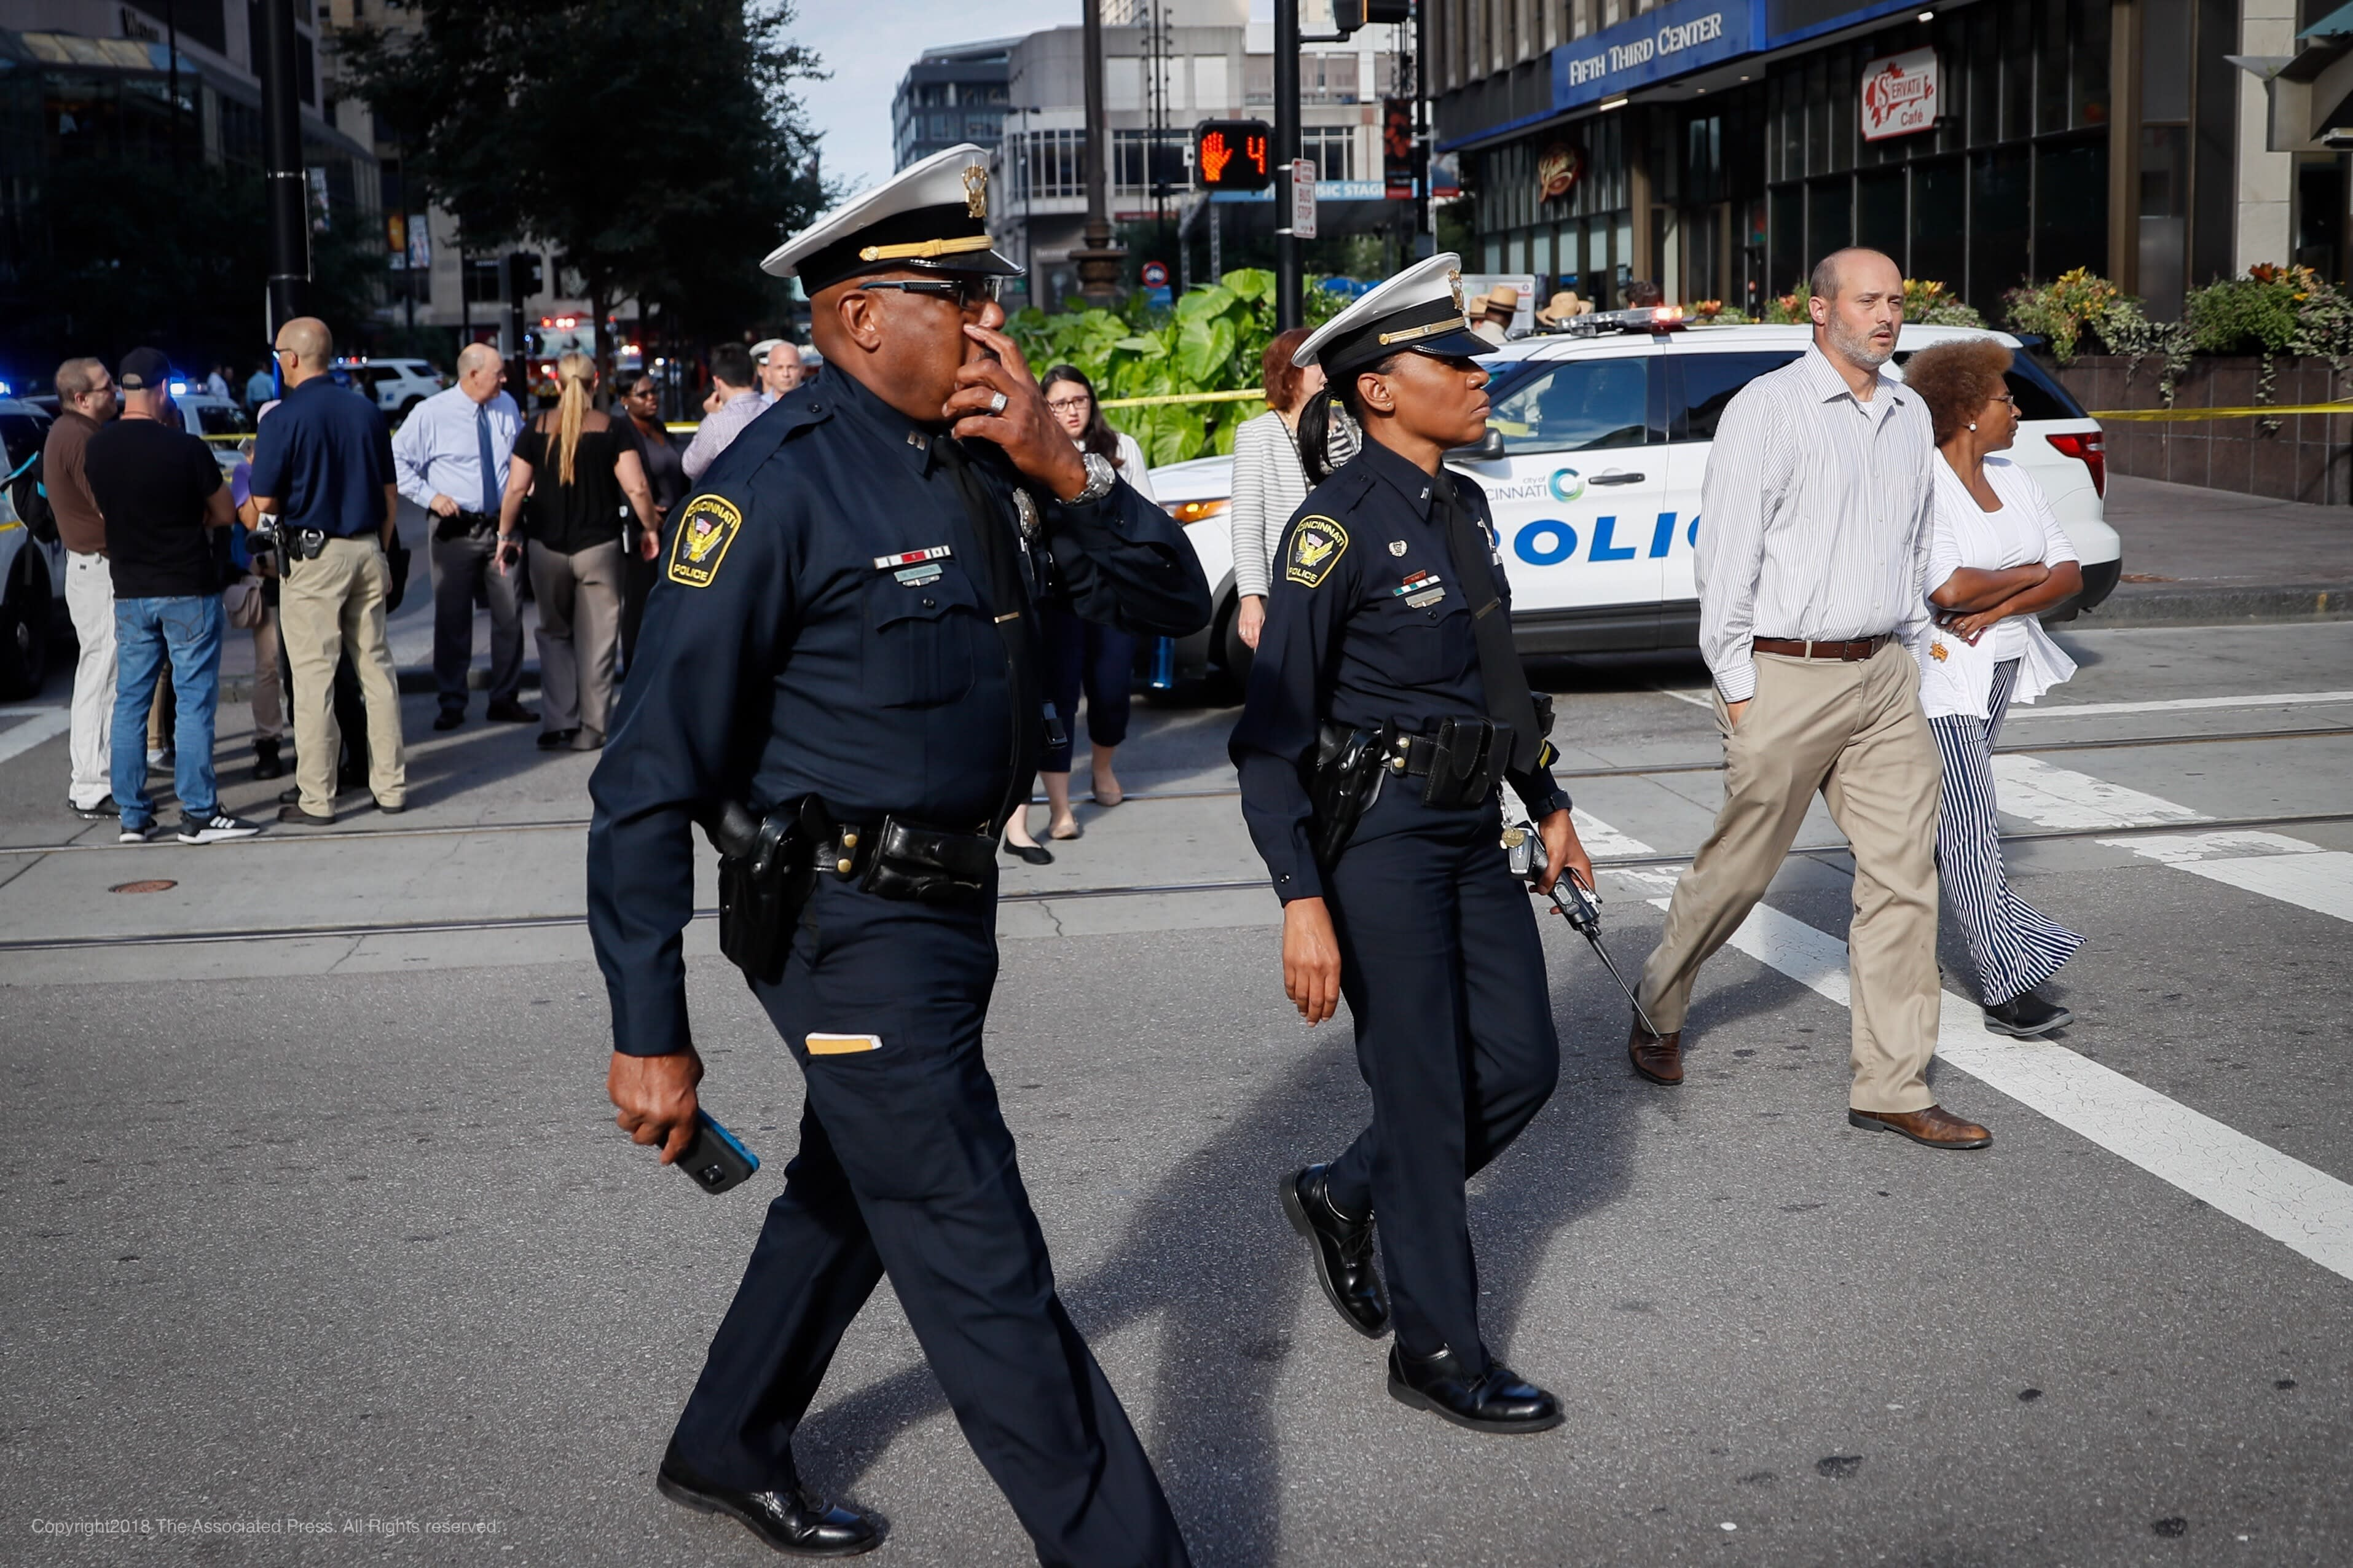 <p>Emergency personnel and police respond to a reported active shooter situation near Fountain Square, Thursday, Sept. 6, 2018, in downtown Cincinnati. (Photo: John Minchillo/AP) </p>